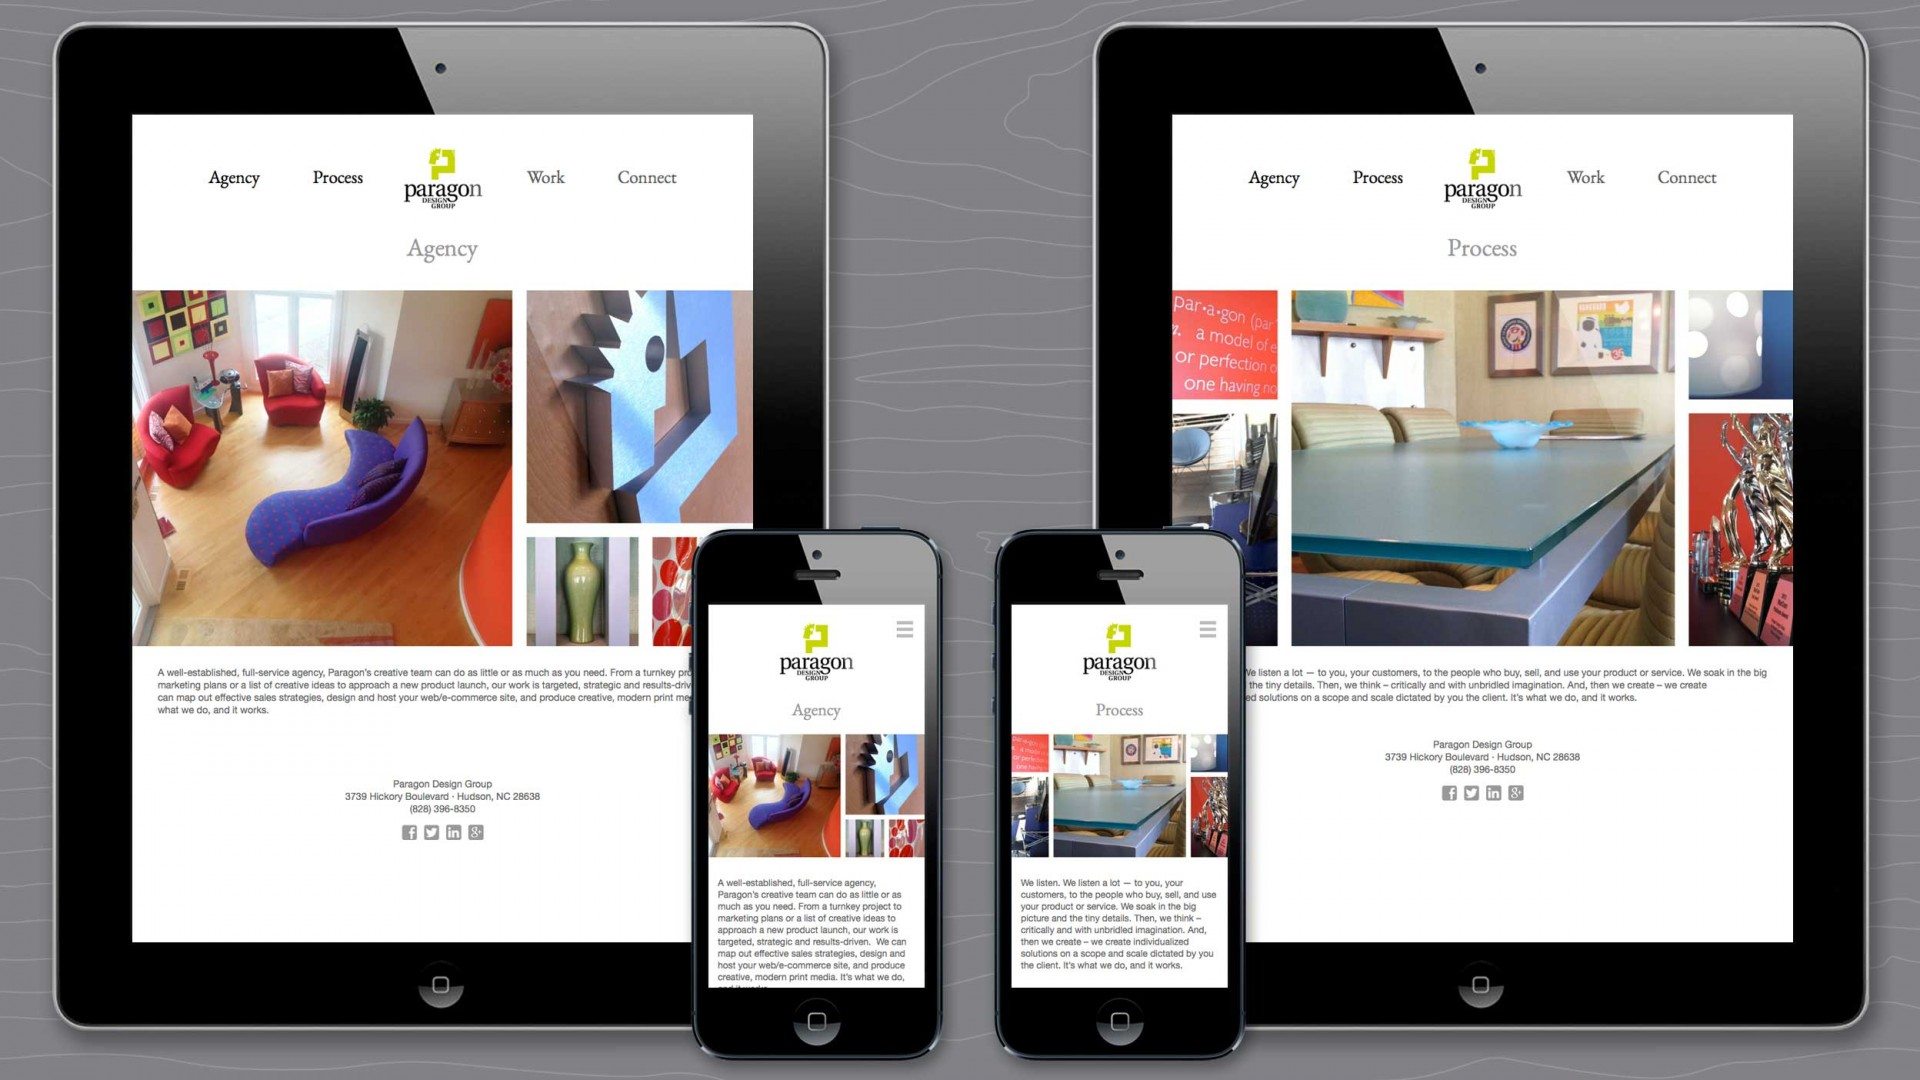 Agency and Process pages of Paragon agency responsive website.